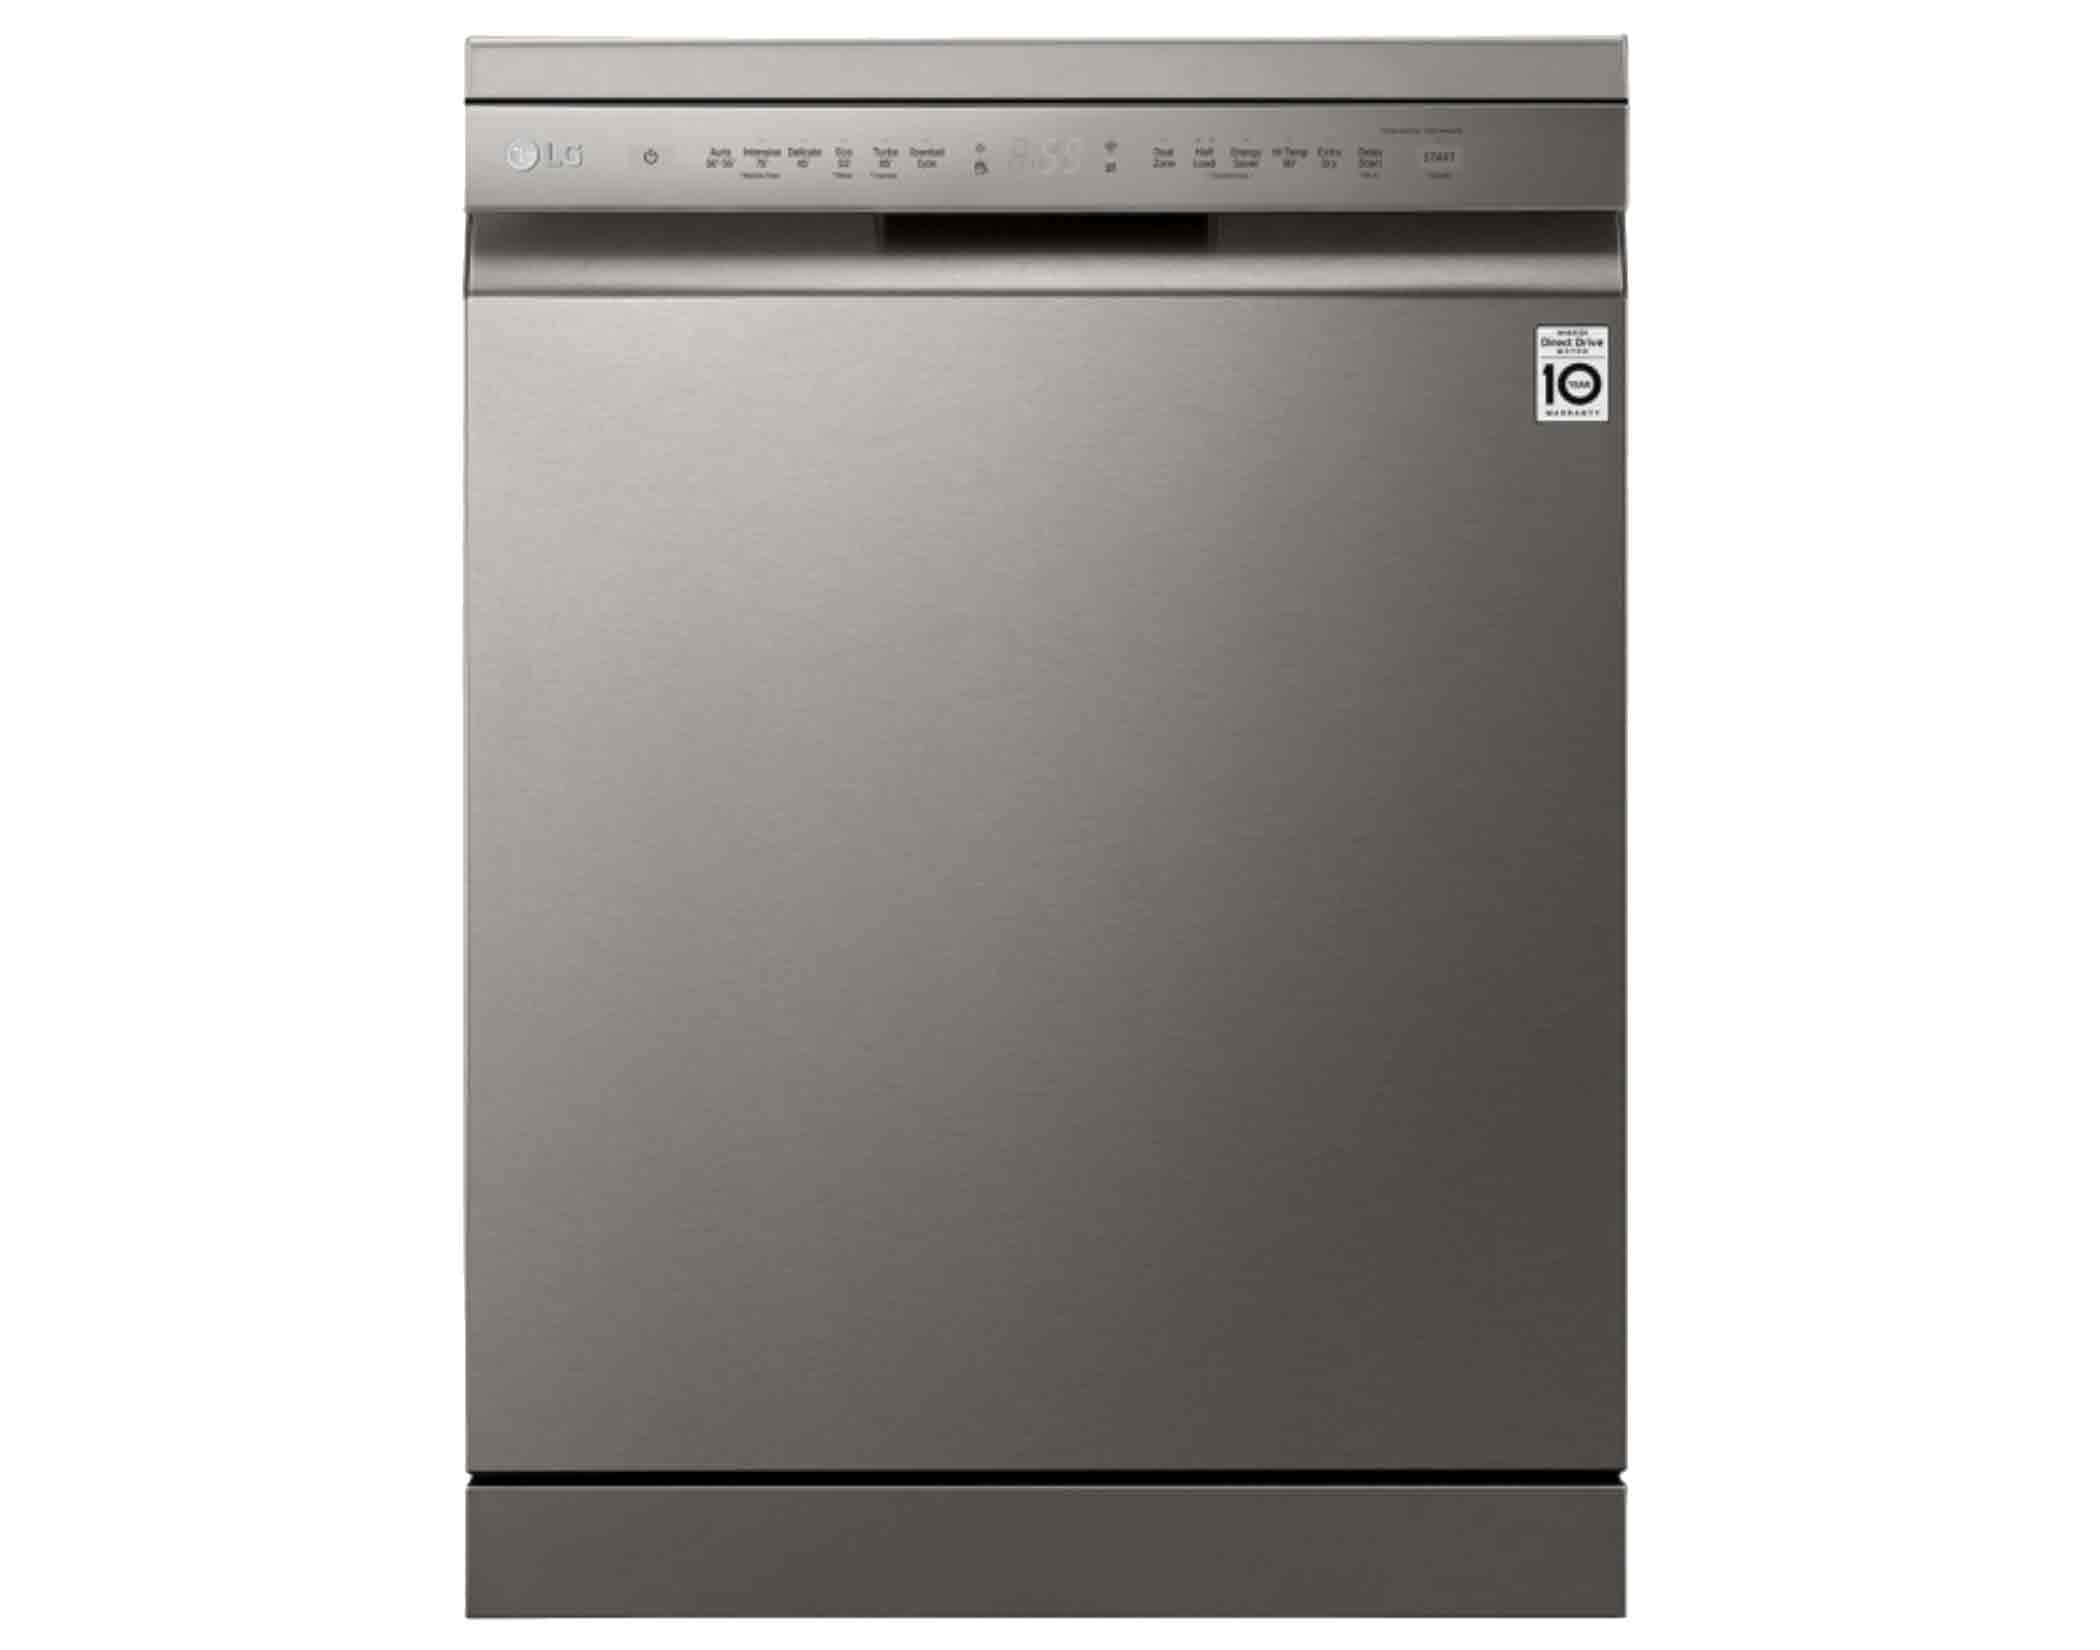 LG XD4B15PS 15 Place QuadWash Dishwasher in Platinum Steel Finish Main